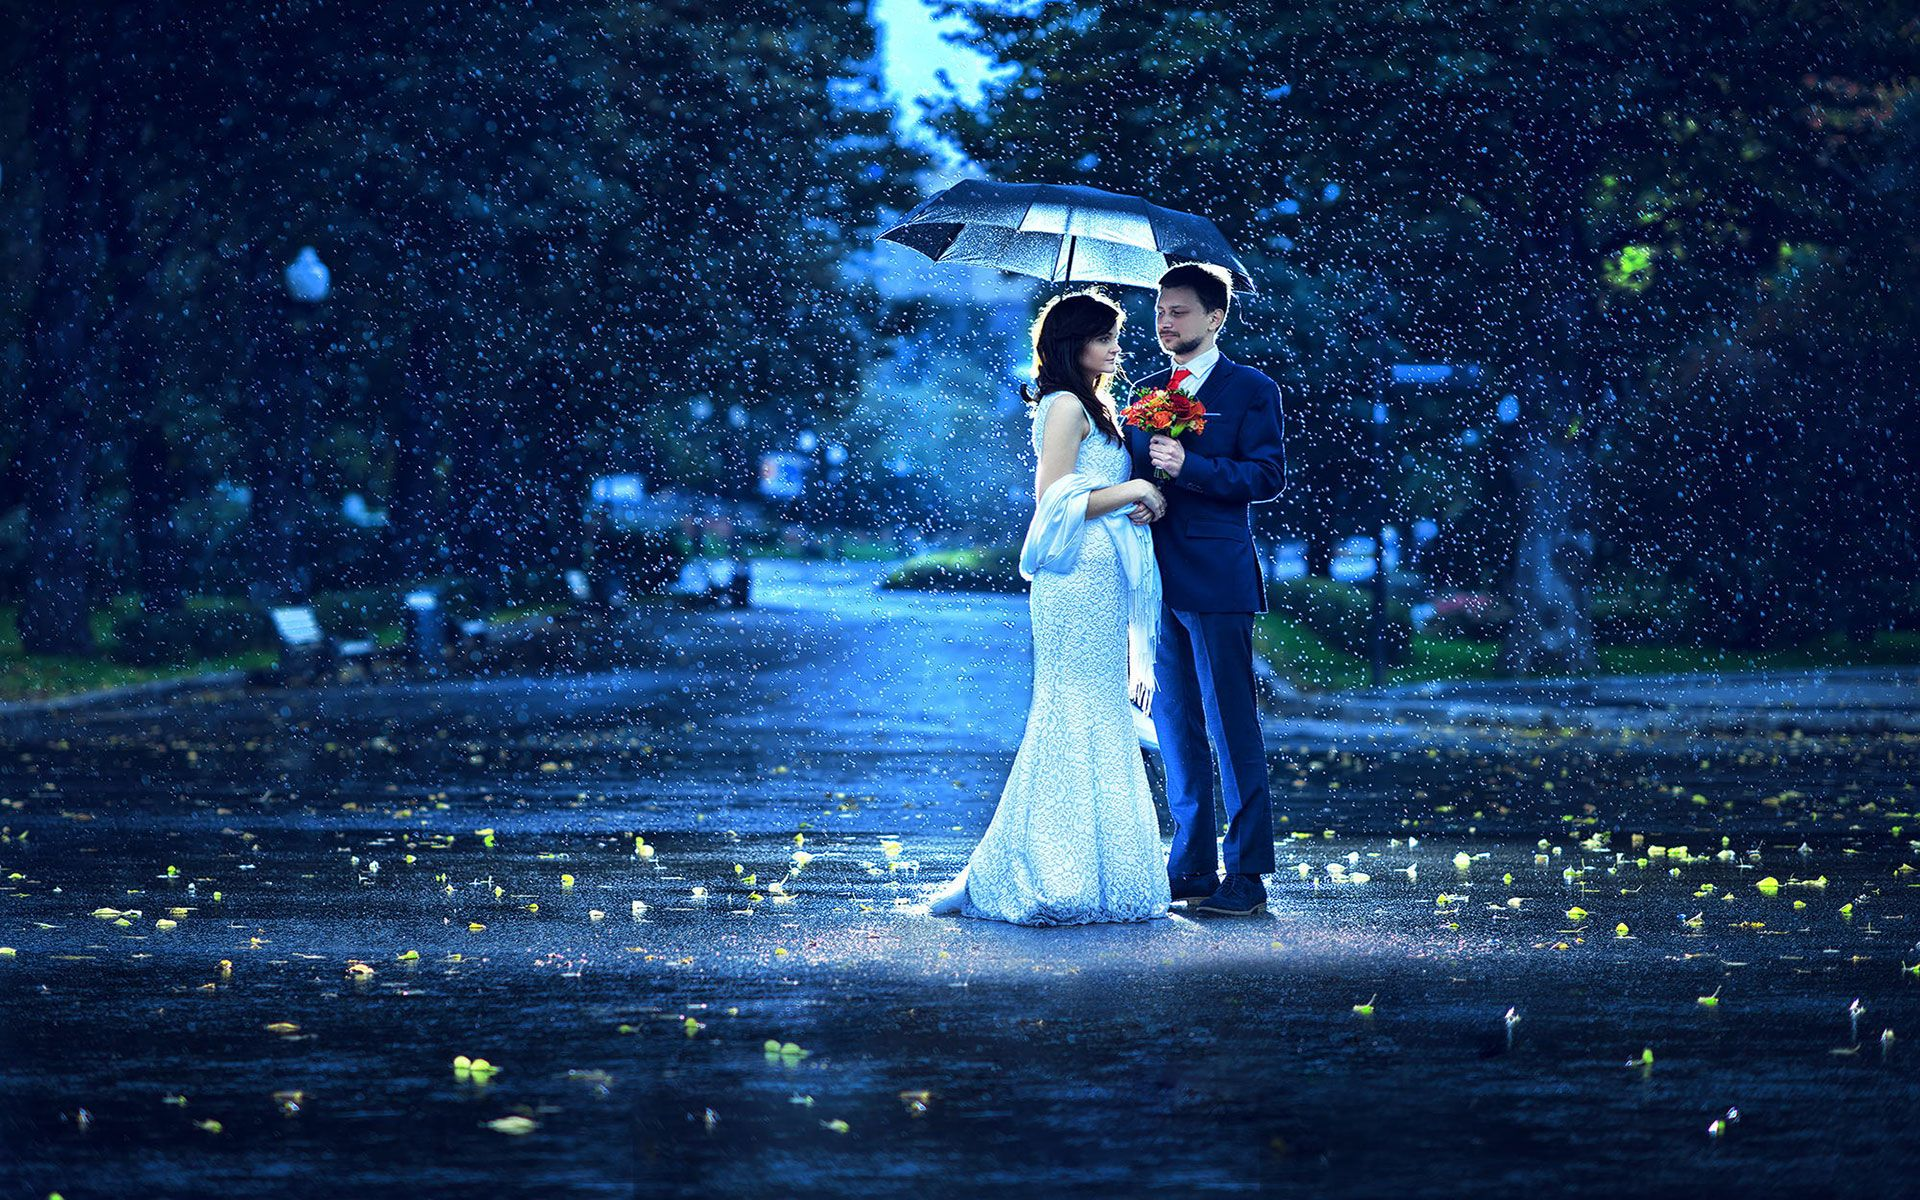 romantic rainy wallpaper - photo #10